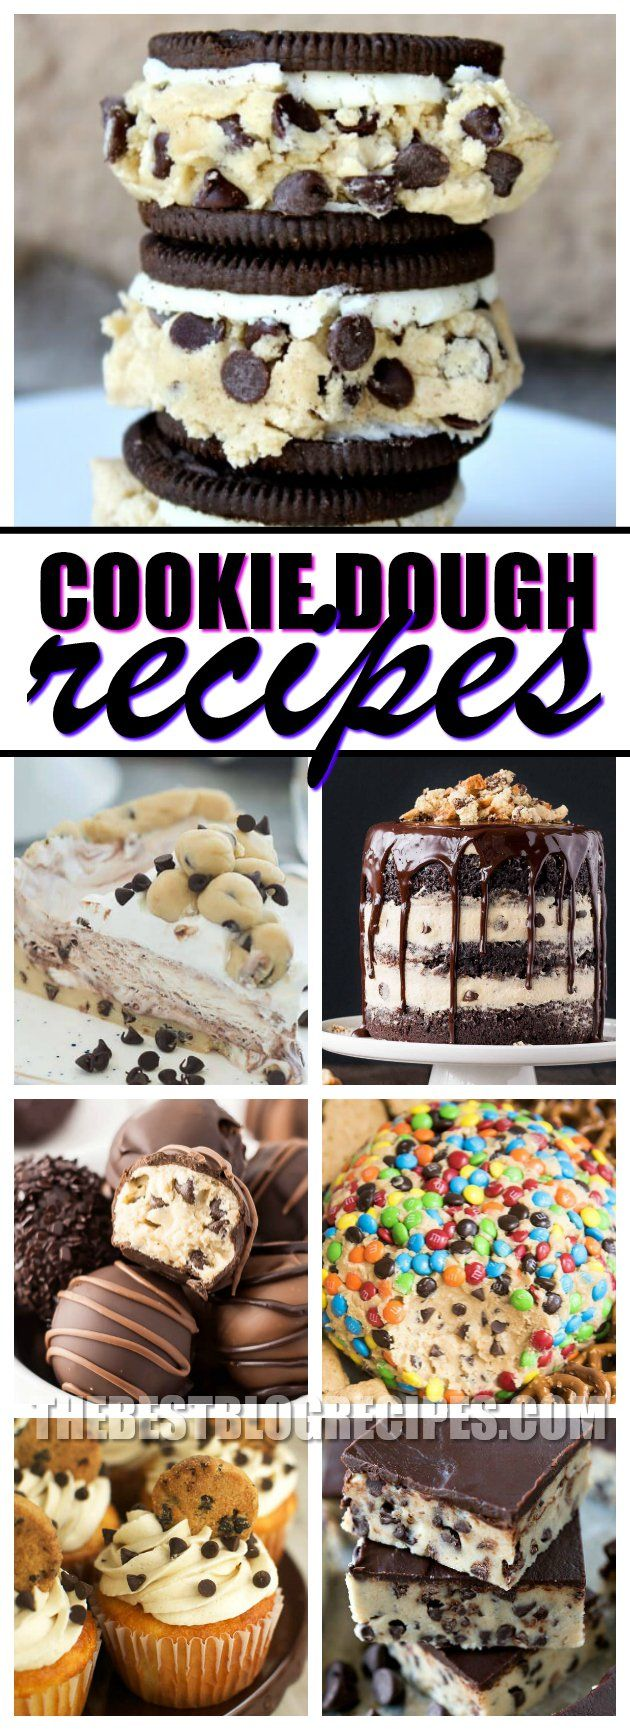 In love with Cookie Dough? So are we!!! That's why we've created the most drool-worthy, and downright sinfully delicious list of 21 Cookie Dough Recipes to make if you're OBSESSED with Cookie Dough. From stuffed Oreos, to cheesecake and fudge -- they are all easy to make and oh-so incredibly delicious too! via @bestblogrecipes